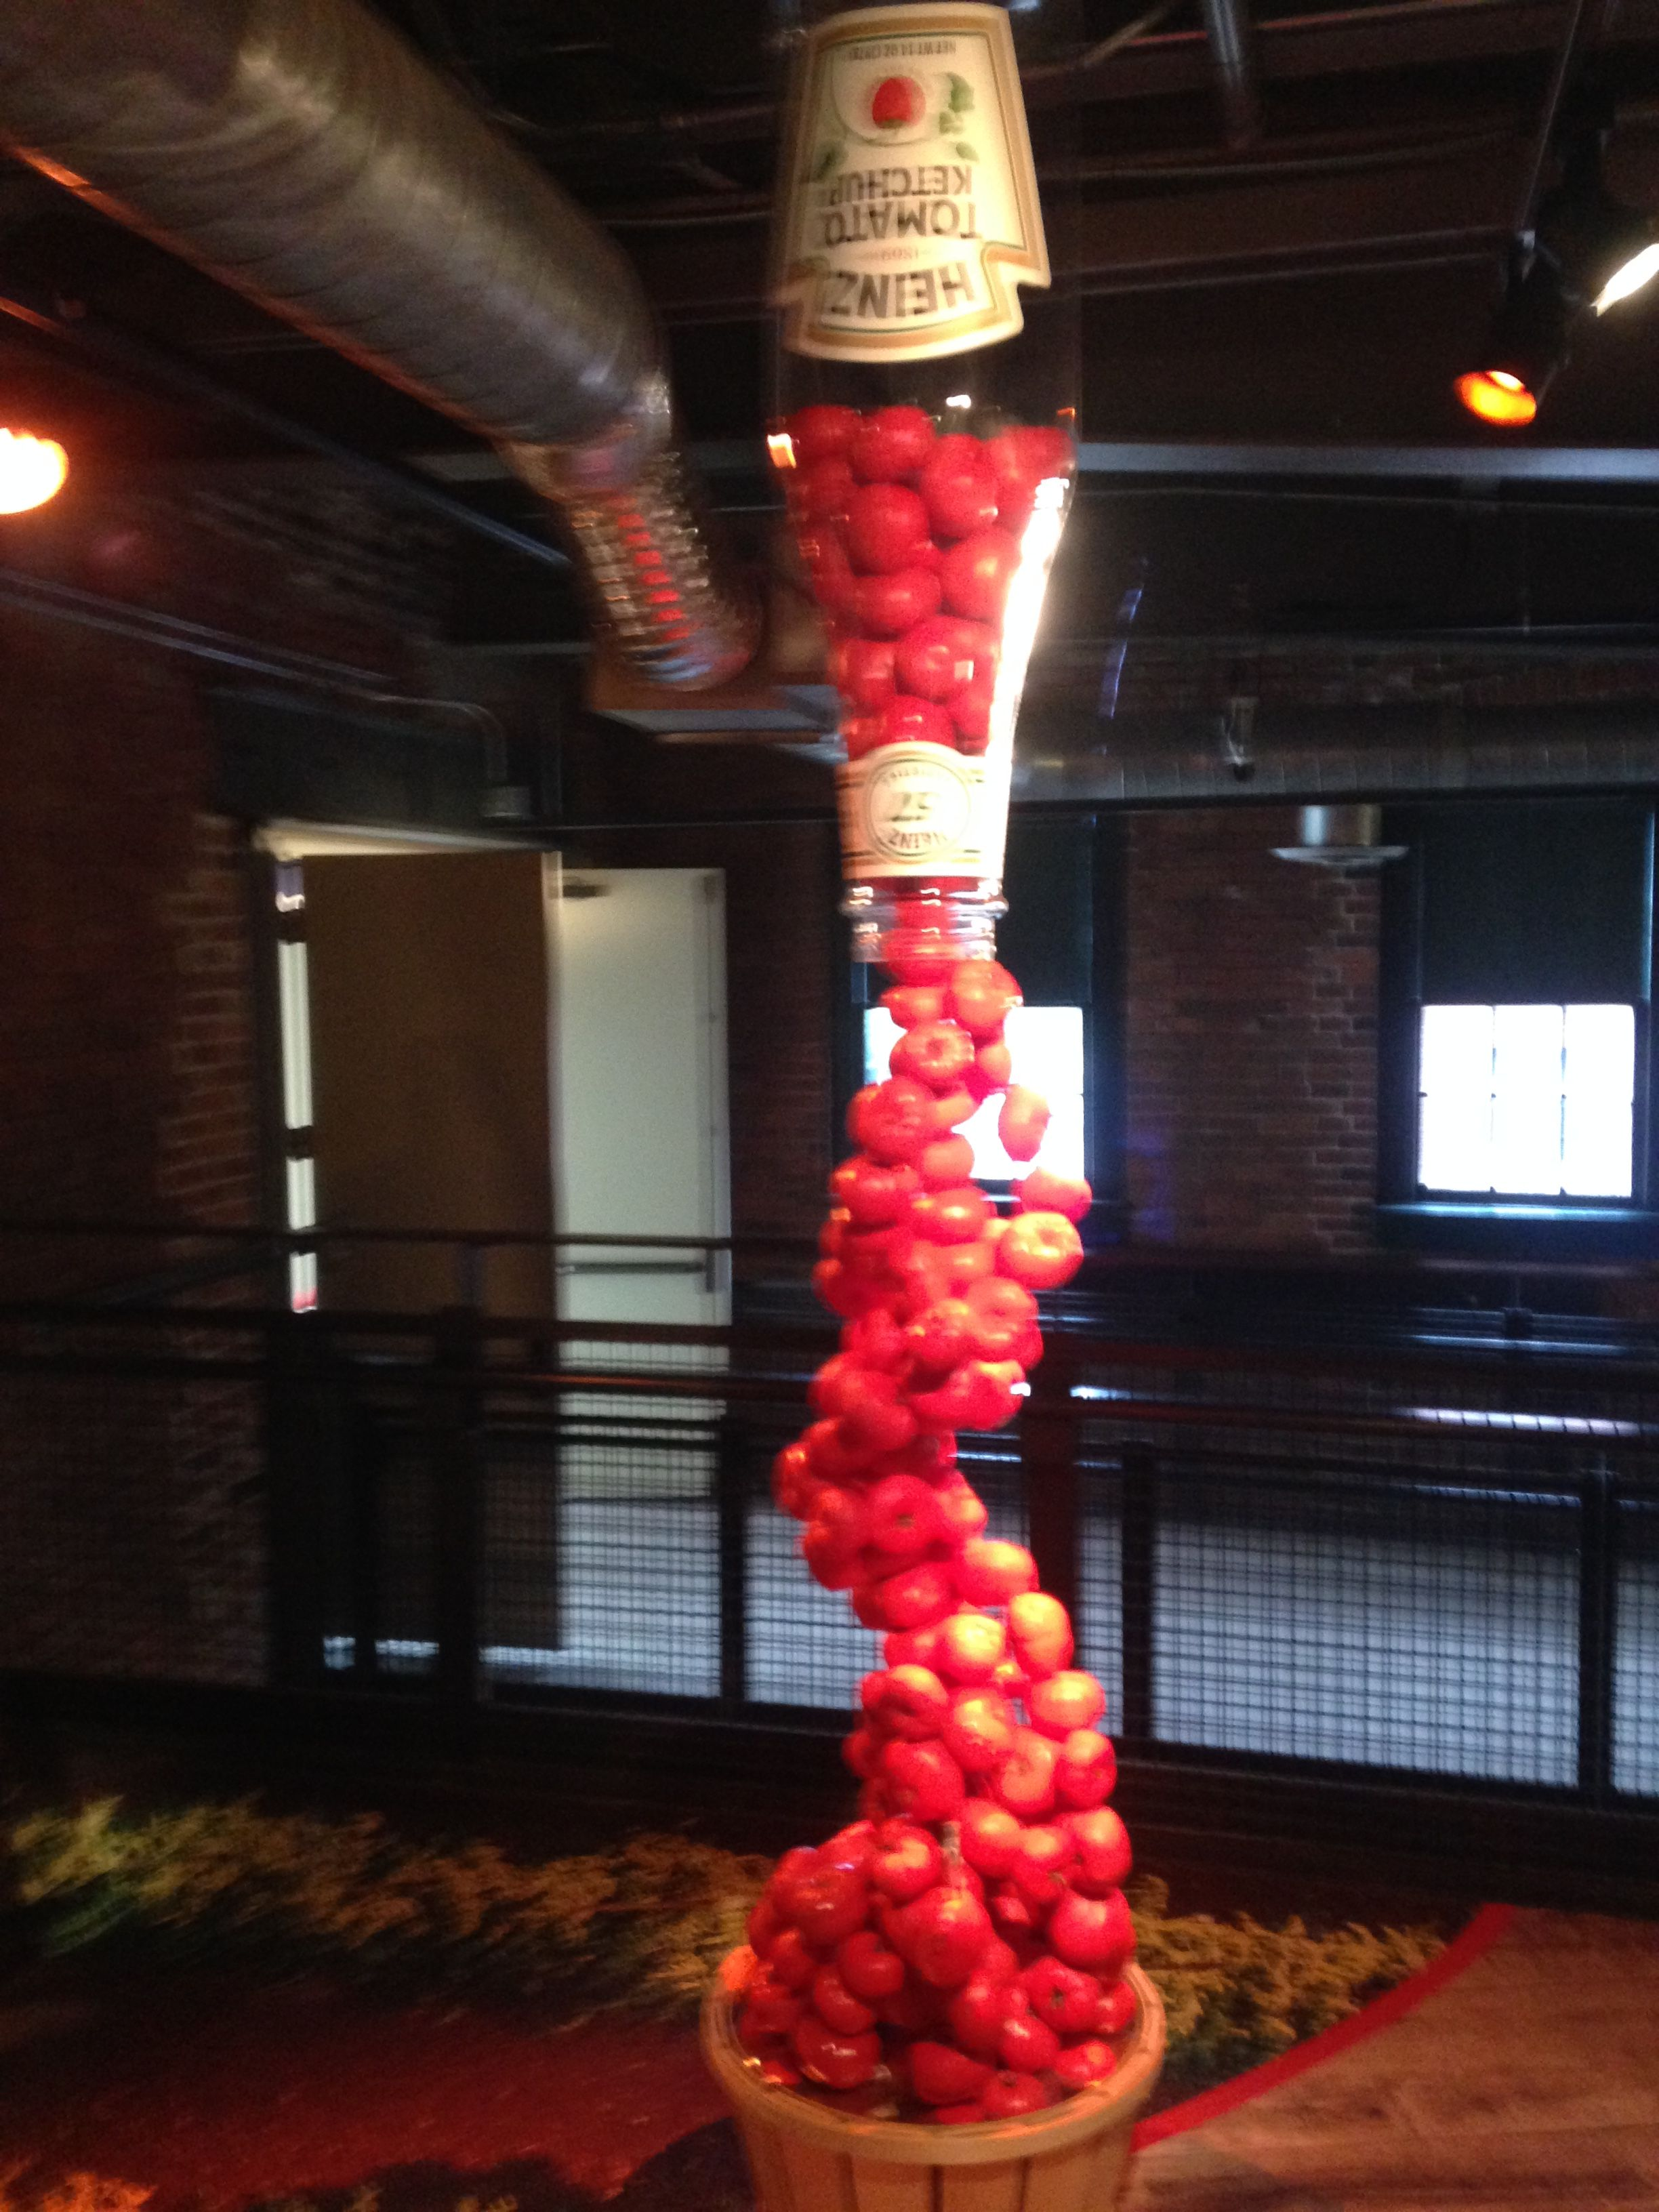 717e6b078 Tomatoes pouring out of Heinz Ketchup bottle on display art - Heinz History  Center - Pittsburgh, PA - July 2018